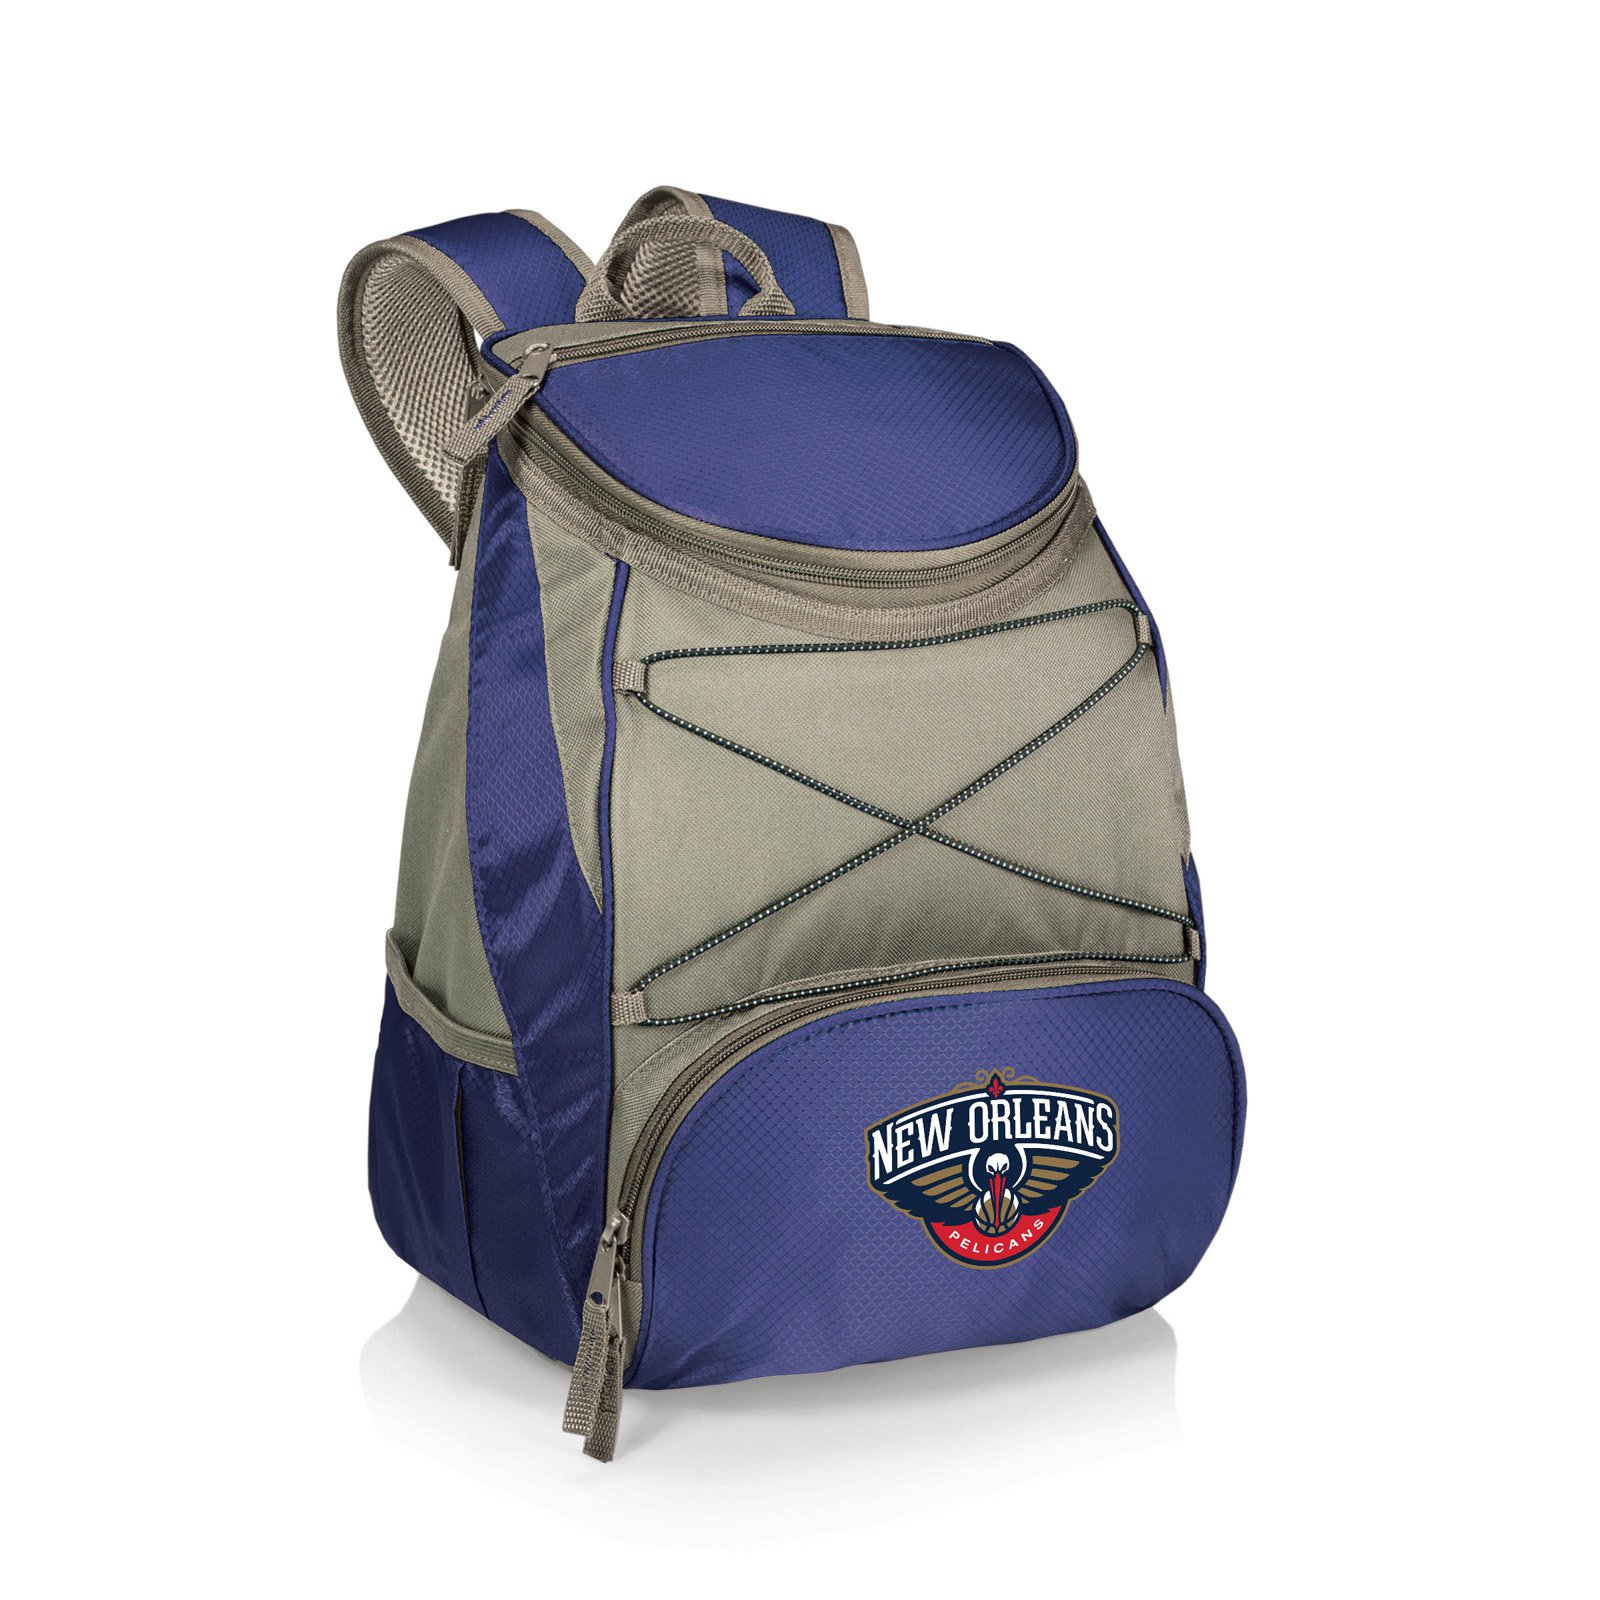 """Picnic Time PTX Cooler Backpack Golden State Warriors Print  11"""" x 7"""" x 12.5"""""""